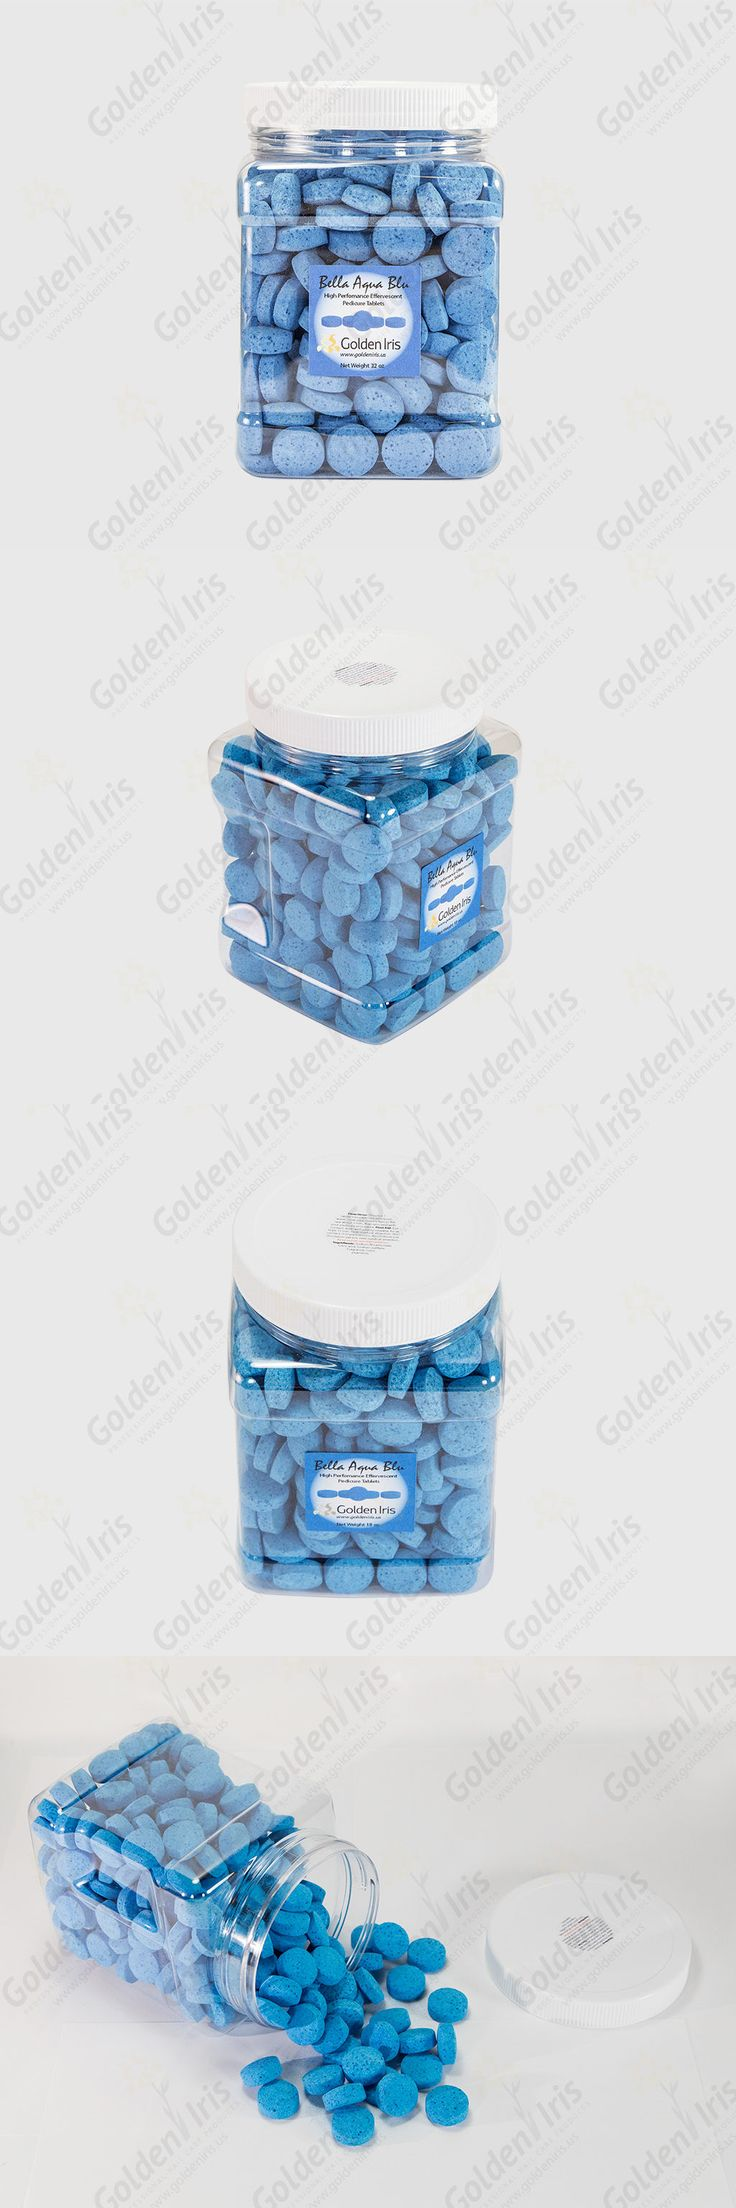 Spas Baths and Supplies: Pedicure Spa Treatment Tablets Aqua Bella Blu 32Oz Jar Germs Viruses Protection -> BUY IT NOW ONLY: $35.49 on eBay!